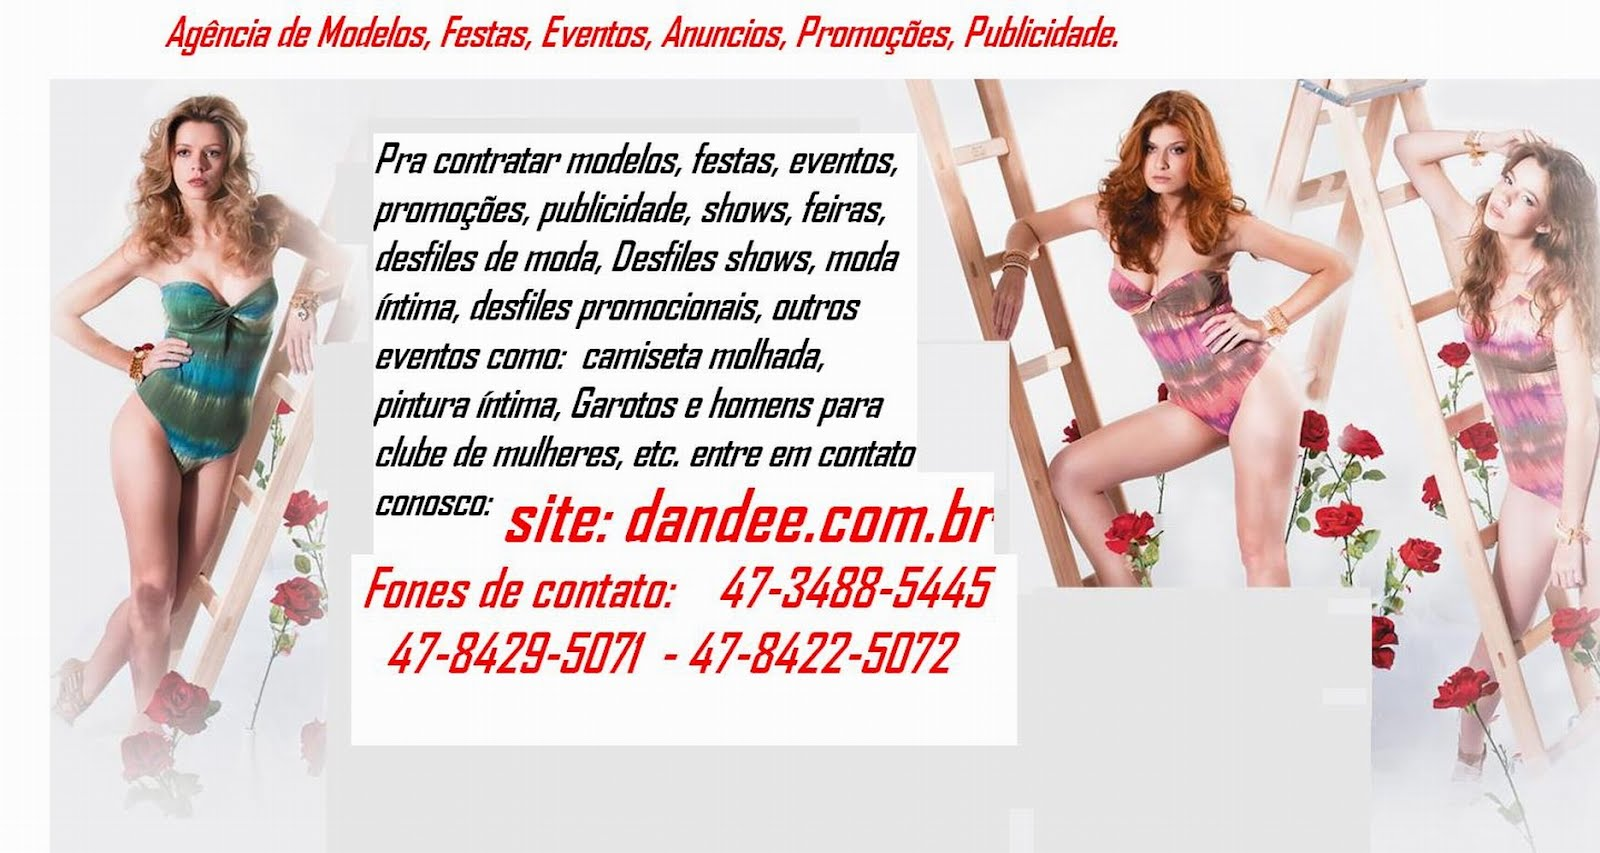 sex massage amager gratis luder